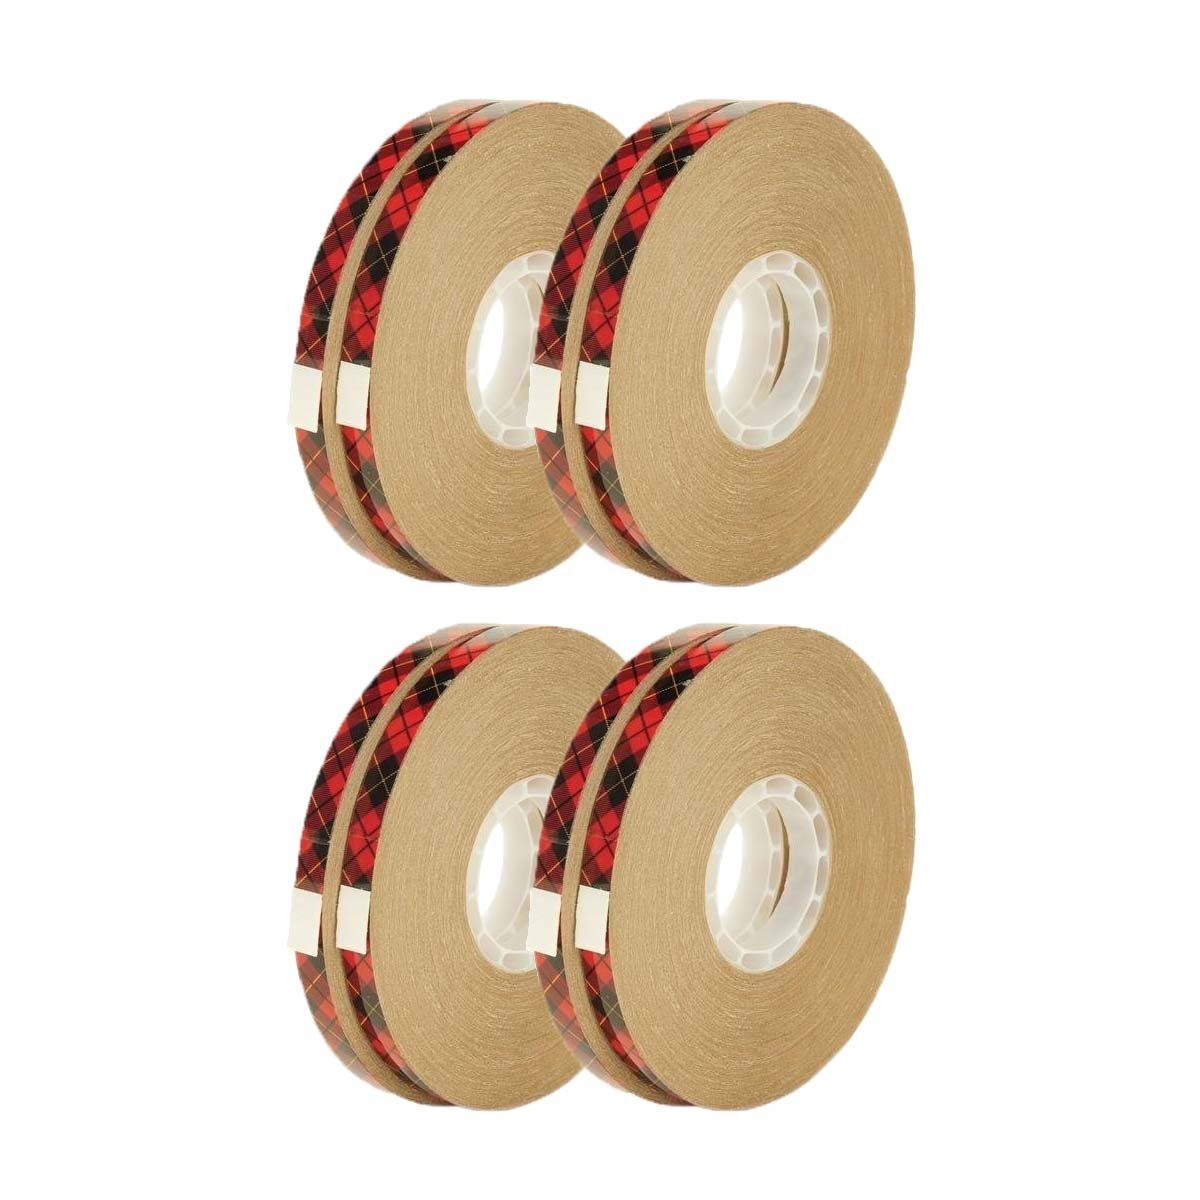 3M Scotch 085-R ATG Tape Glider Refill Rolls with Retractable Pen, 1/4-Inch x 36-Yard, Pack of 4(2-Rolls/Box)